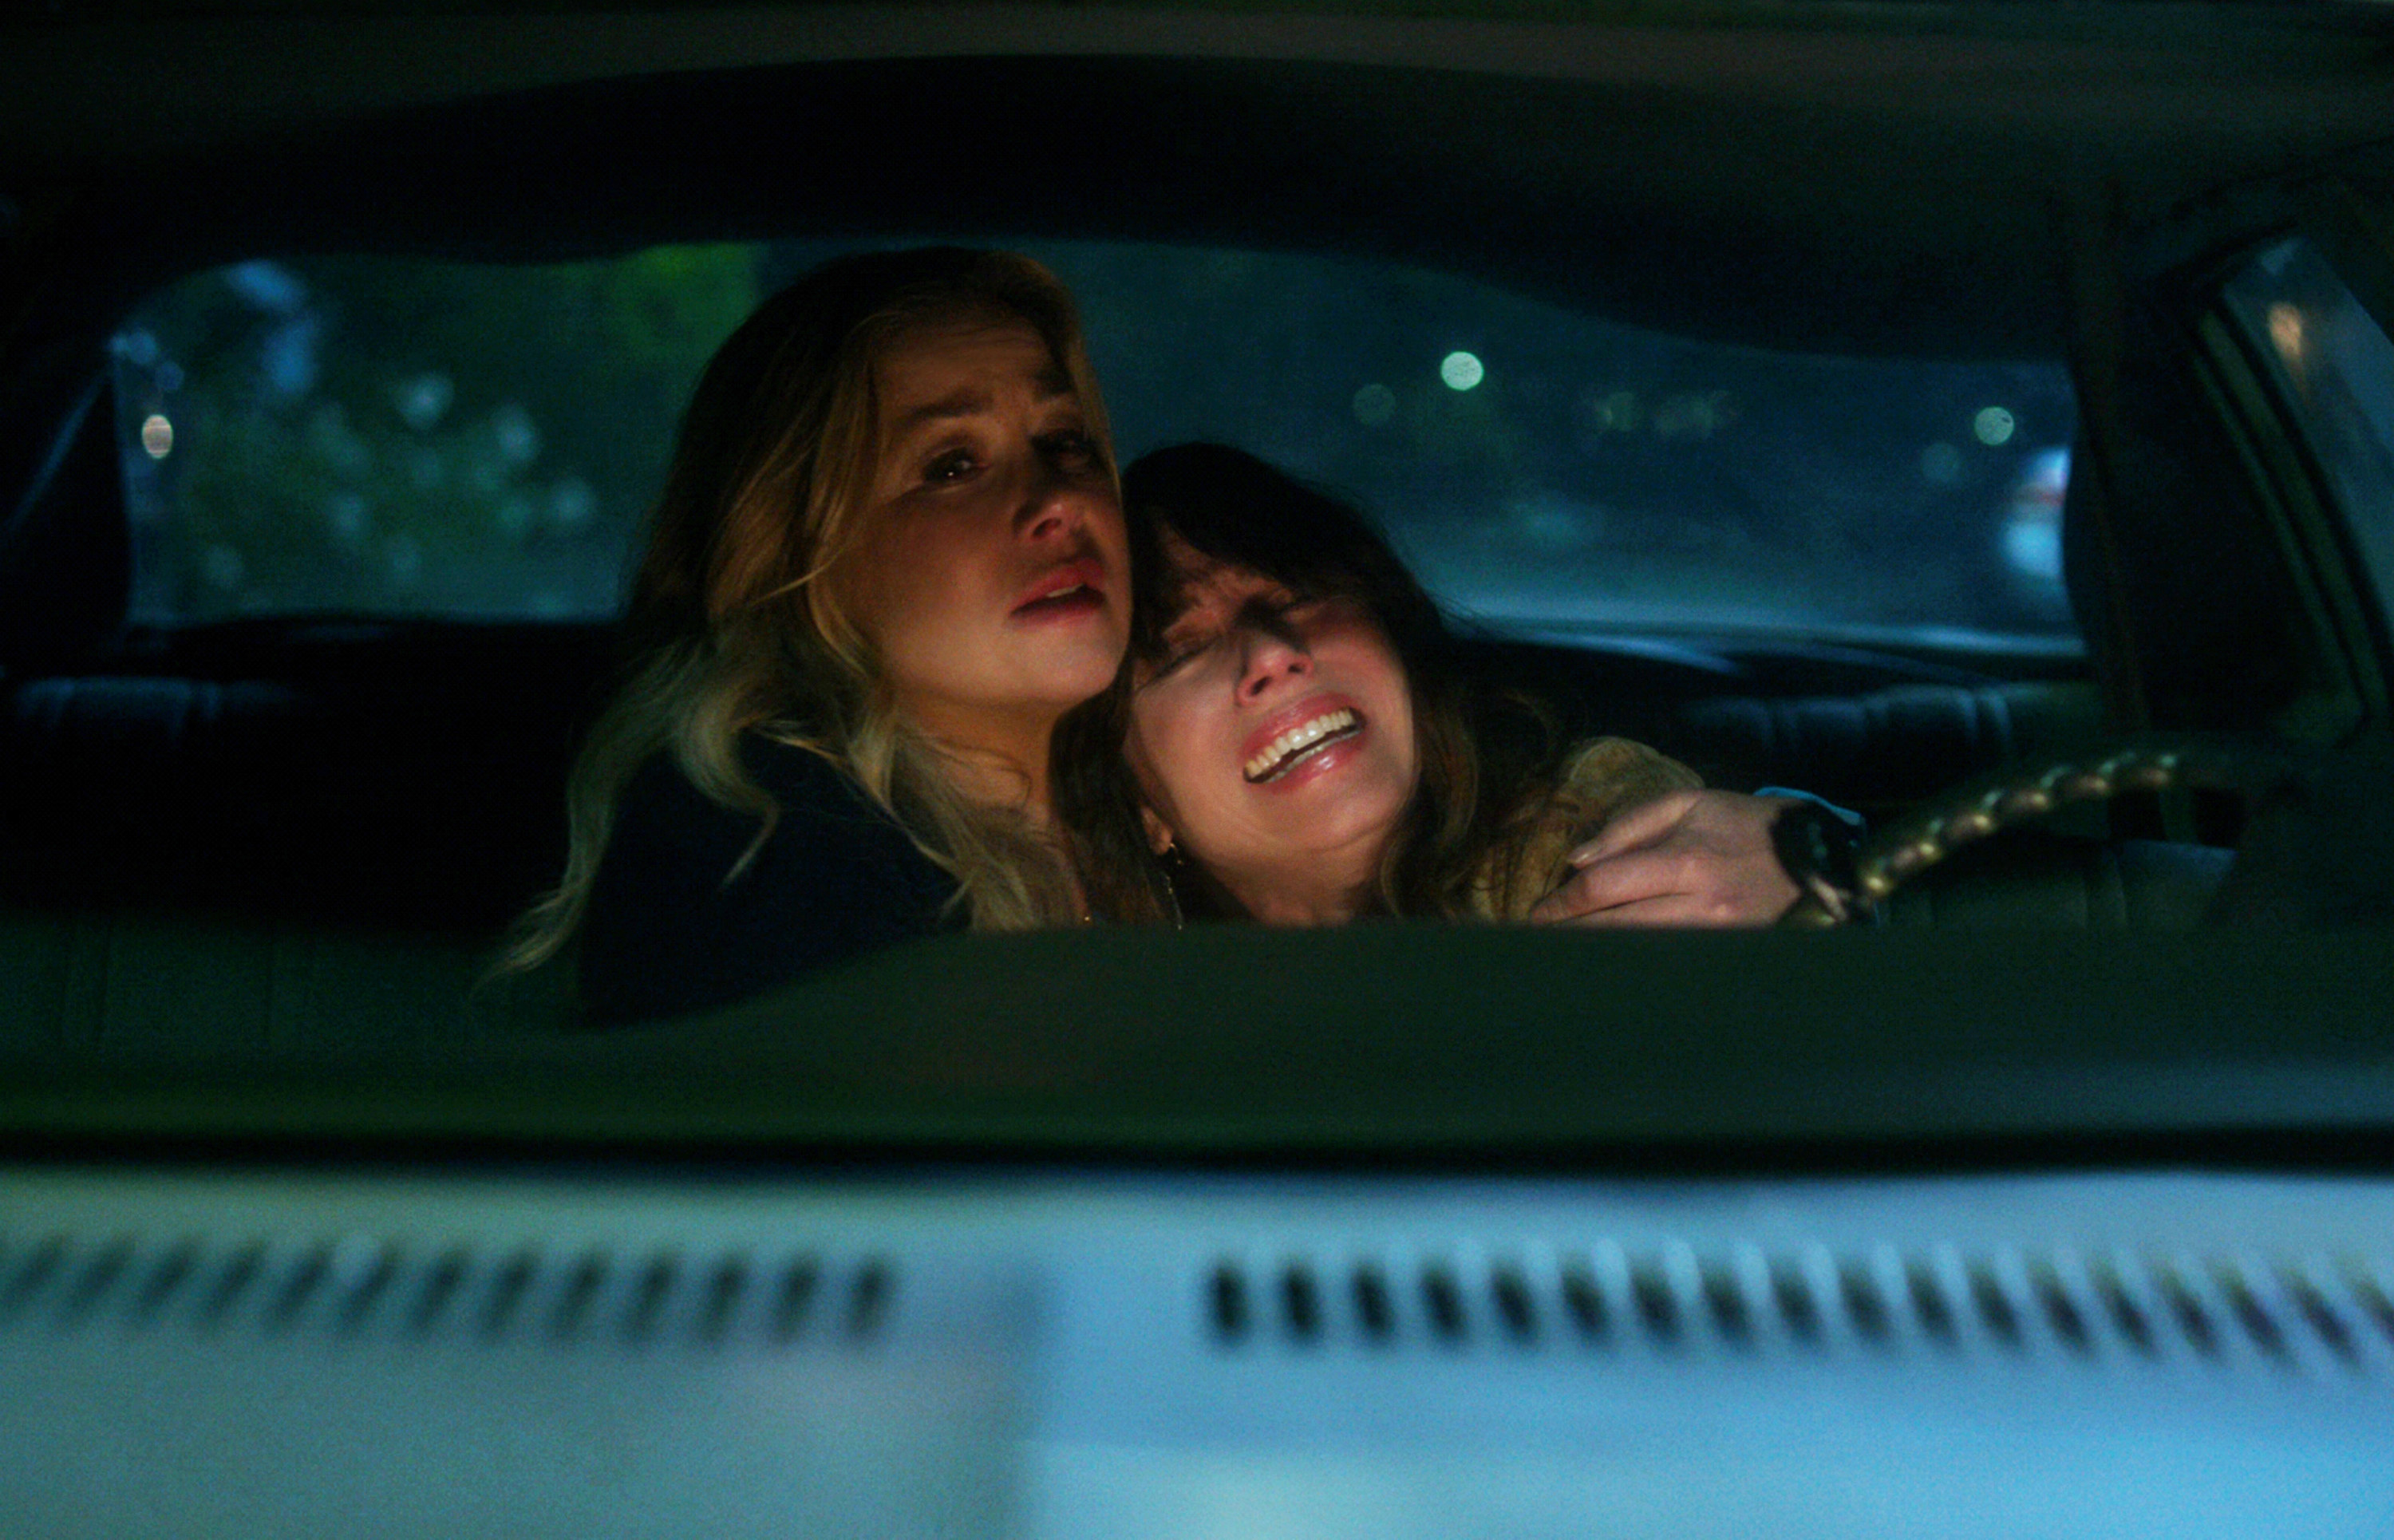 Christina Applegate and Linda Cardellini as Jen and Judy crying in a car in Dead to Me